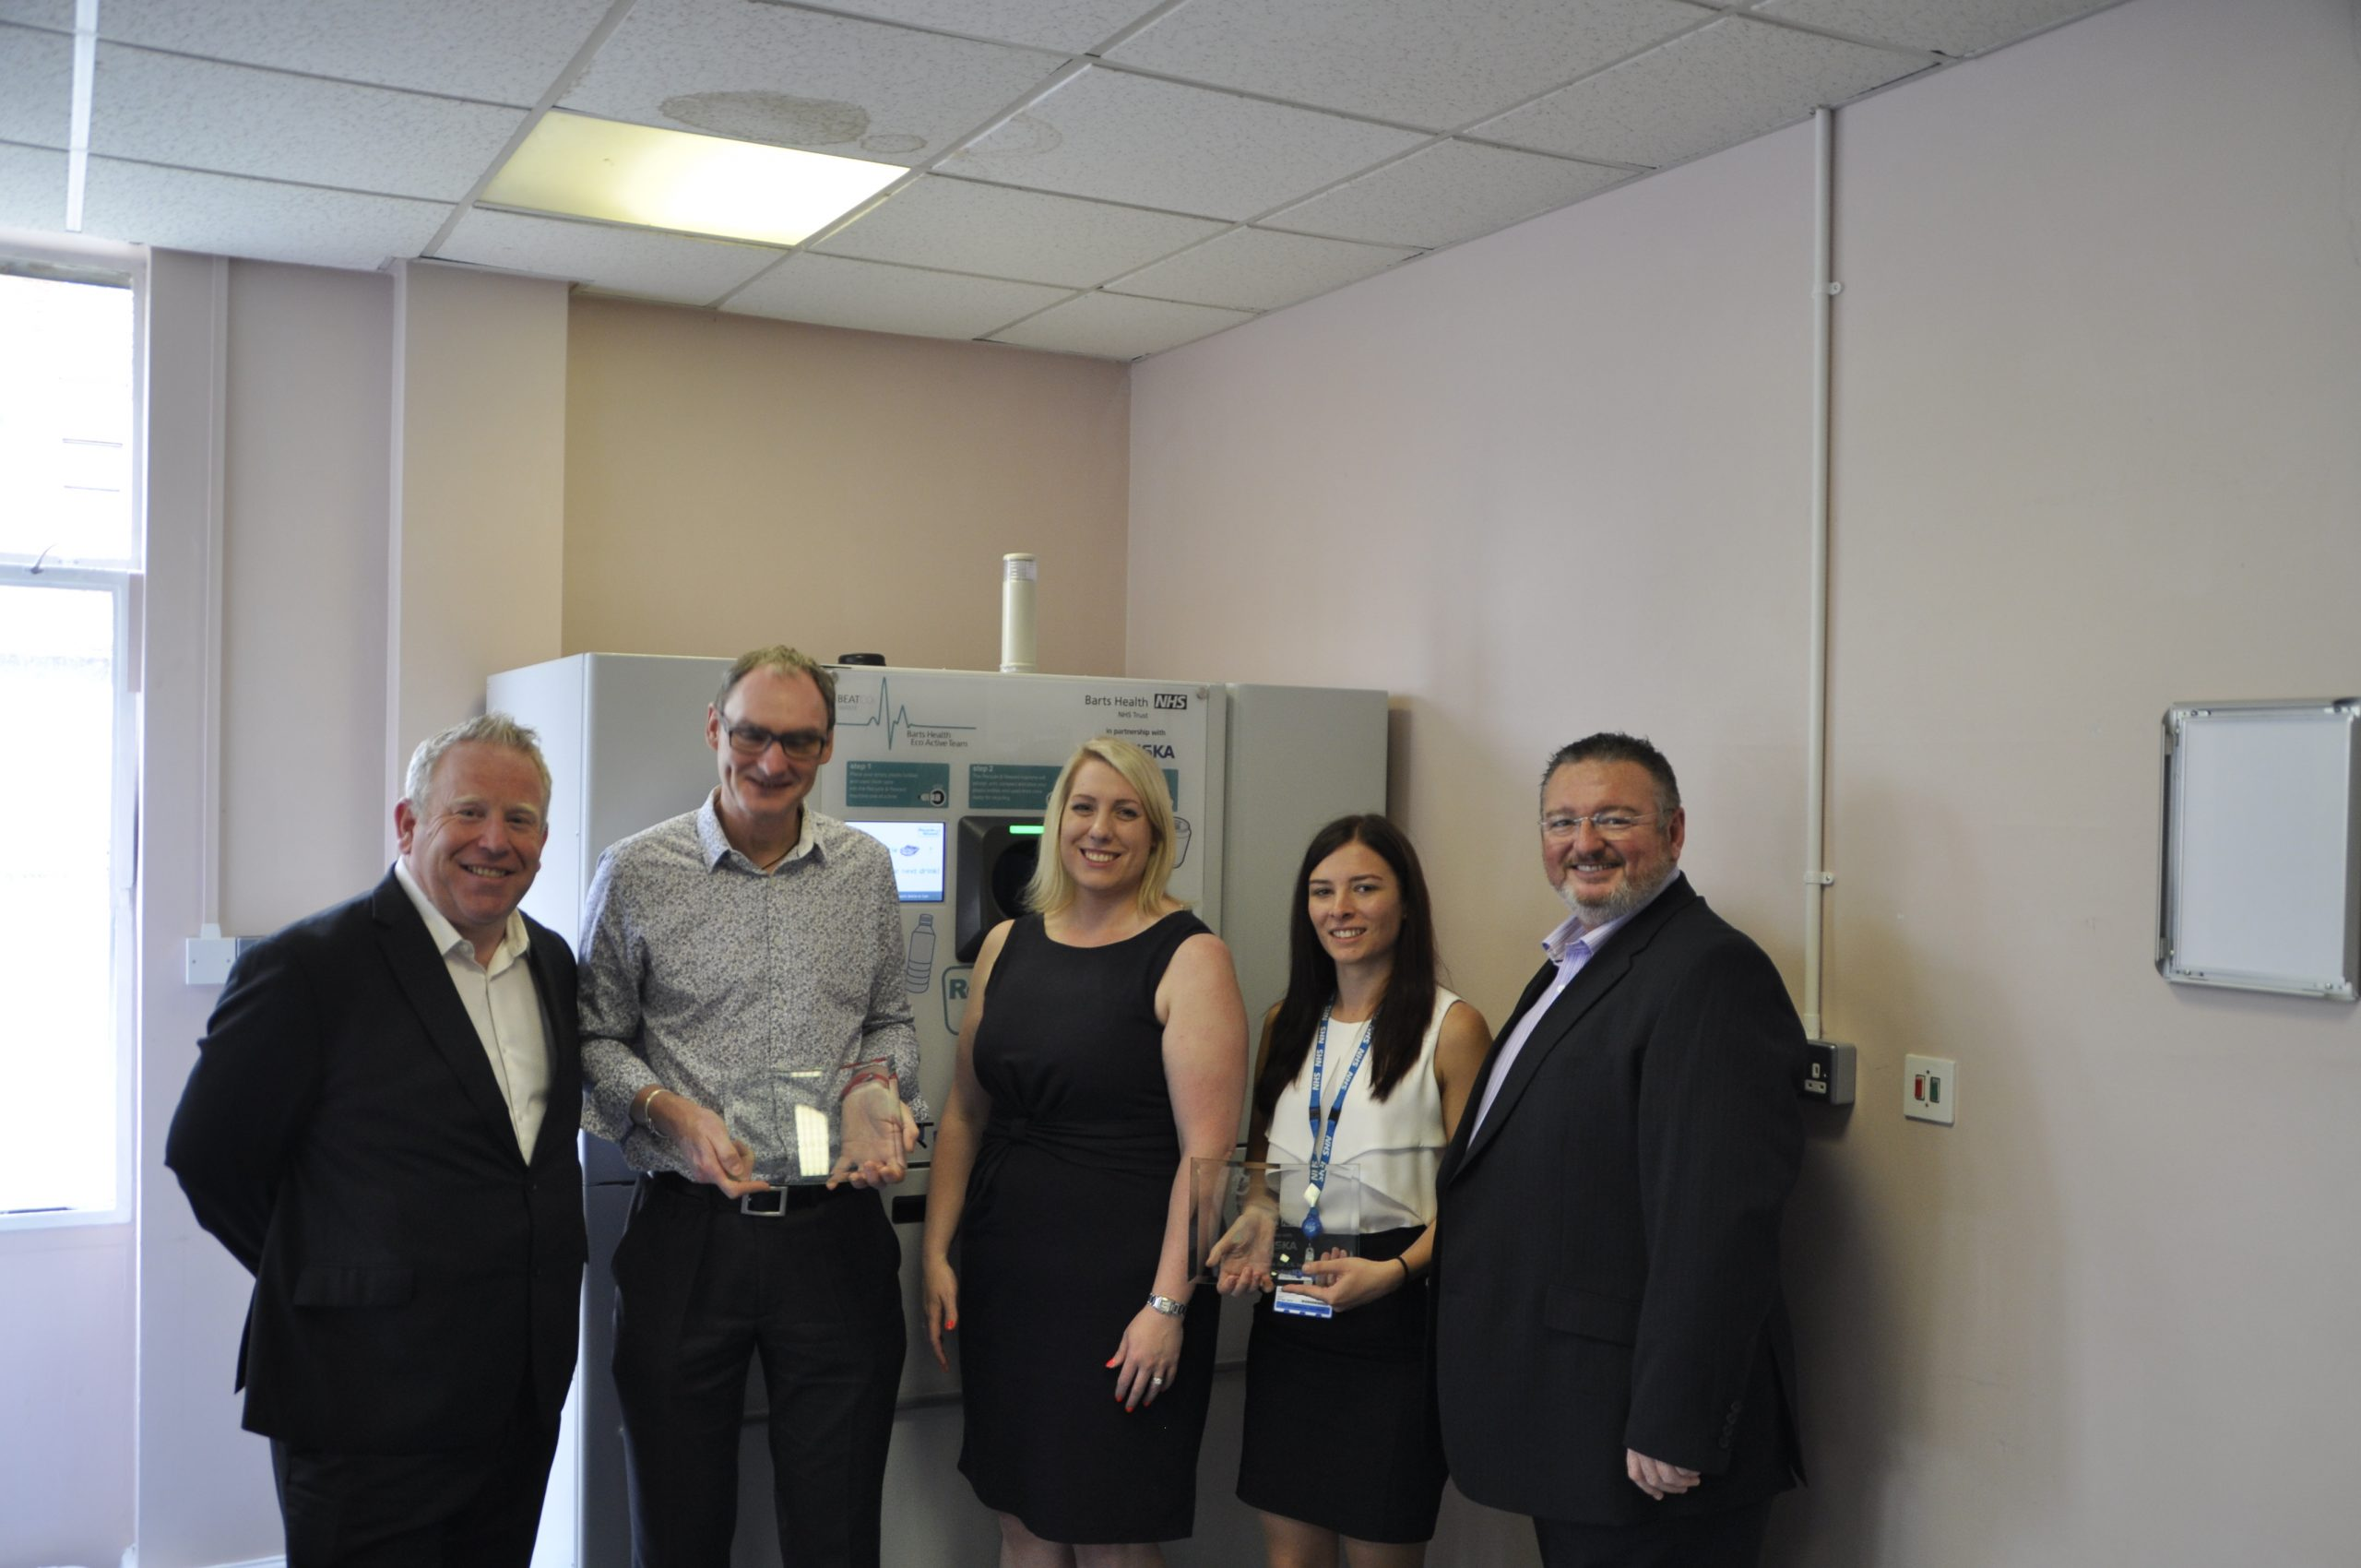 Barts NHS Trust Reverse Vending Award First NHS Trust Hospital in the UK to install a Reverse Vending Machine